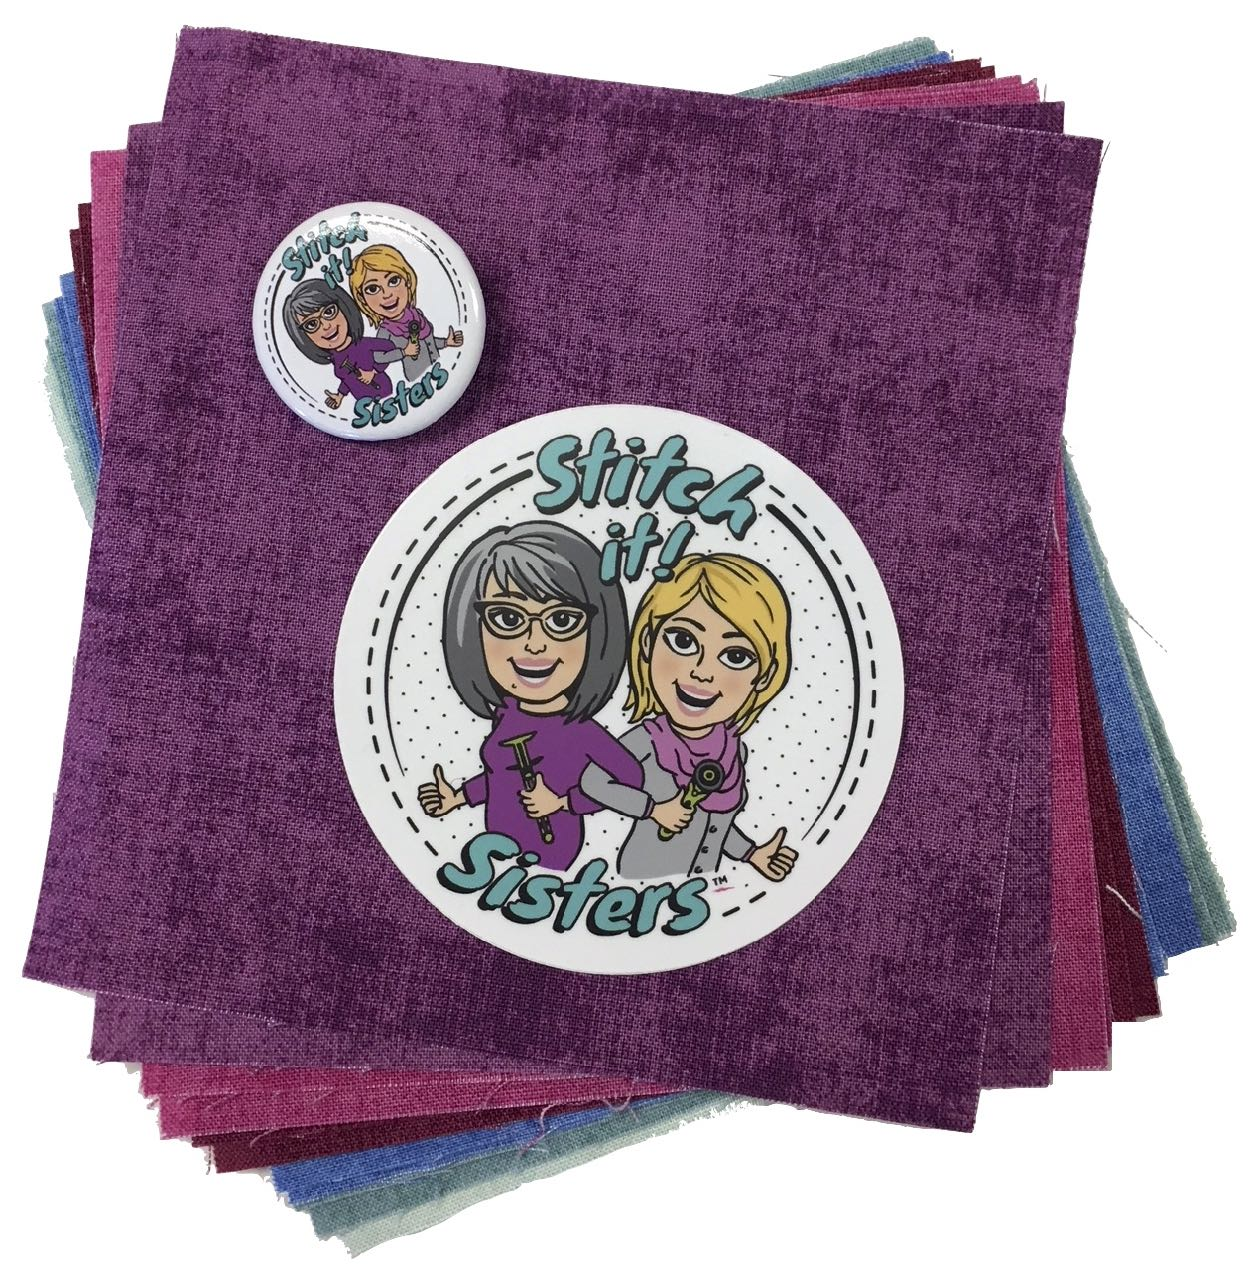 S!S 5-inch Fabric Squares Short Stack with Stitch it! Sisters Sticker and Button Giveaway at the Nancy Zieman Productions Blog